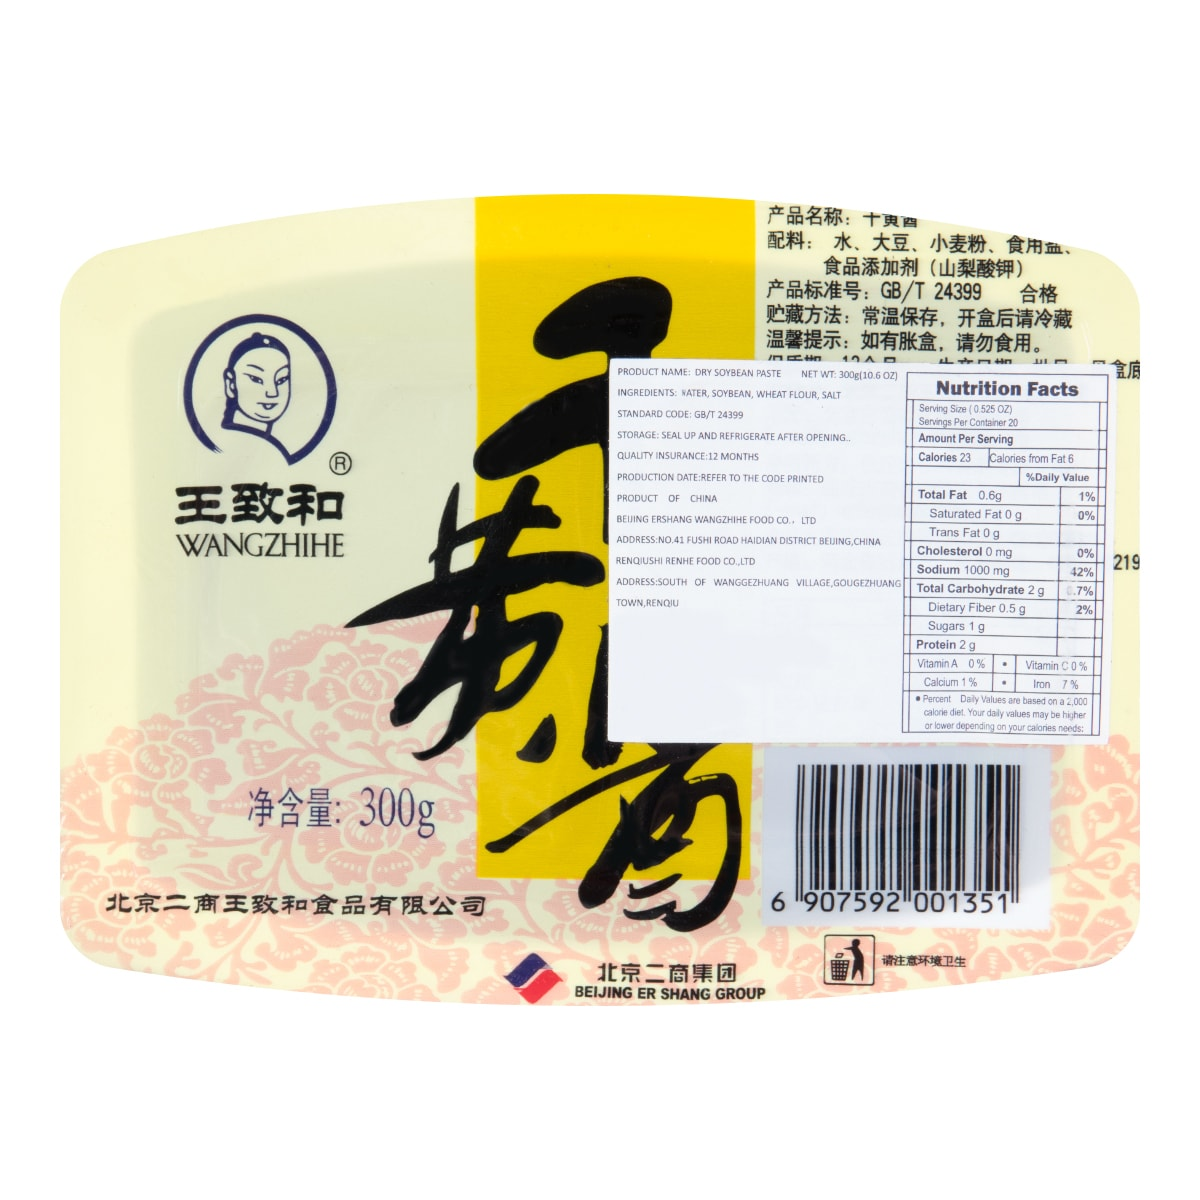 【Clearance】WANG ZHI HE Dry Soybean Paste 300g